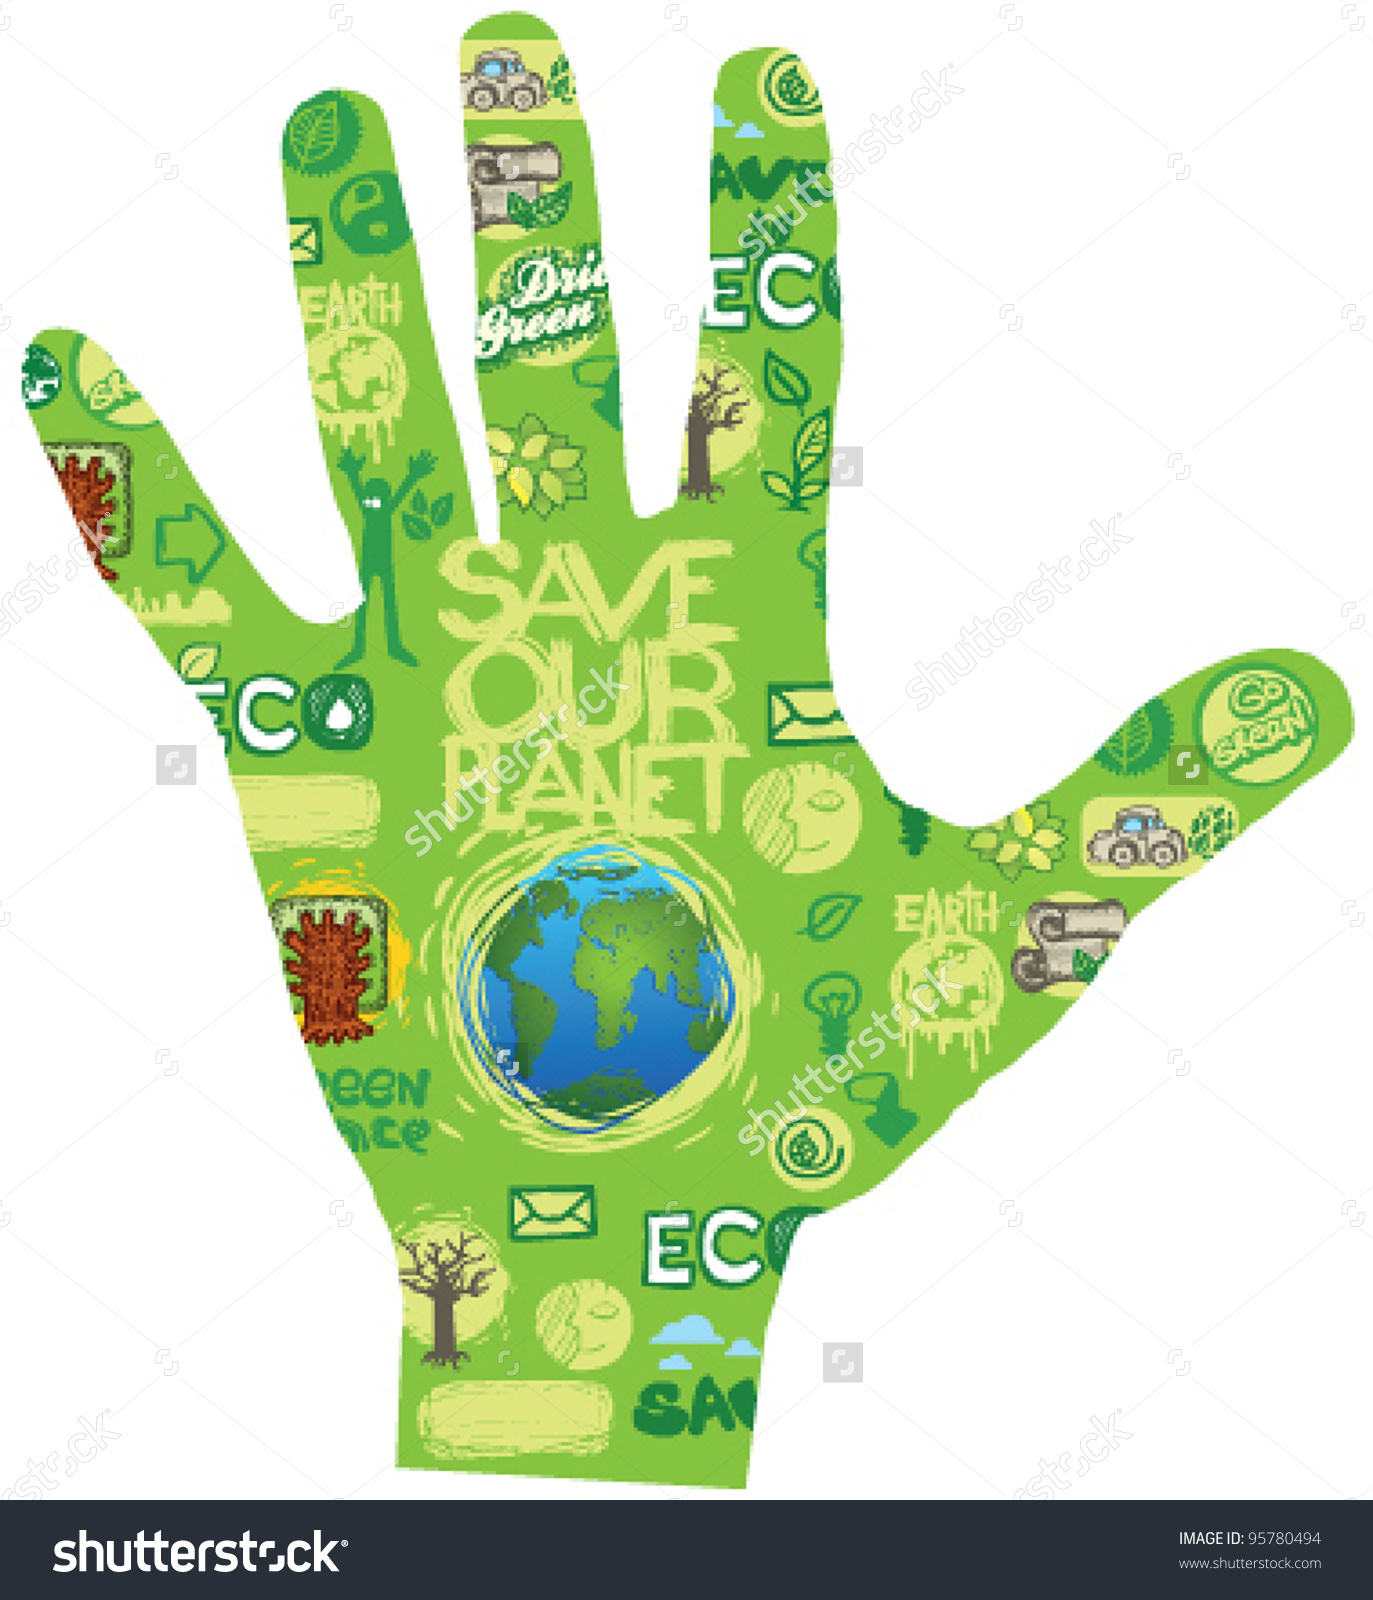 Save energy save environment clipart png library download Save our planet clipart - ClipartFest png library download